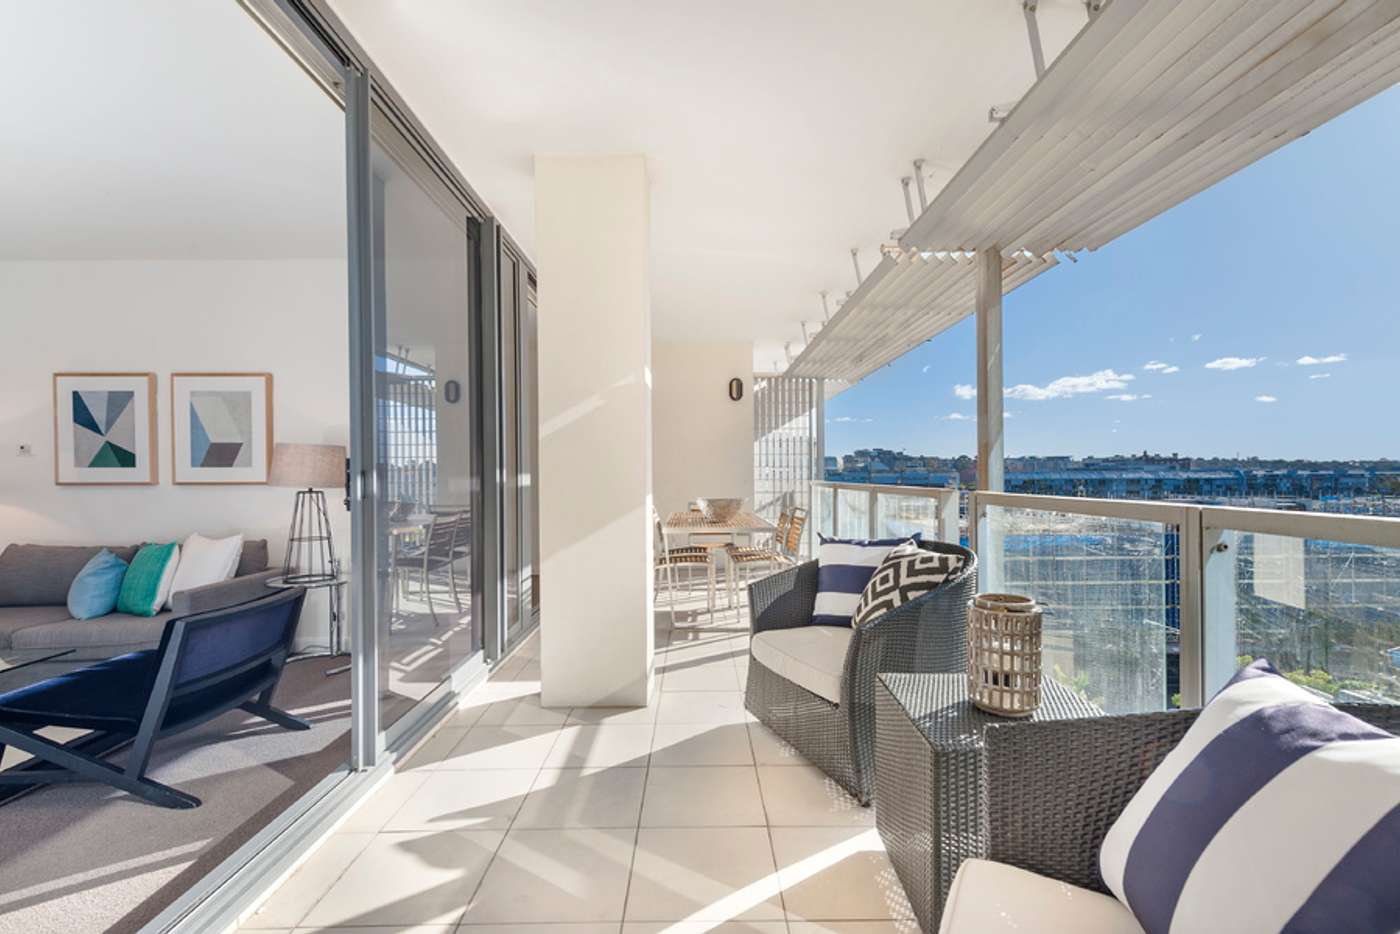 Main view of Homely apartment listing, 706/45 Shelley Street, Sydney NSW 2000